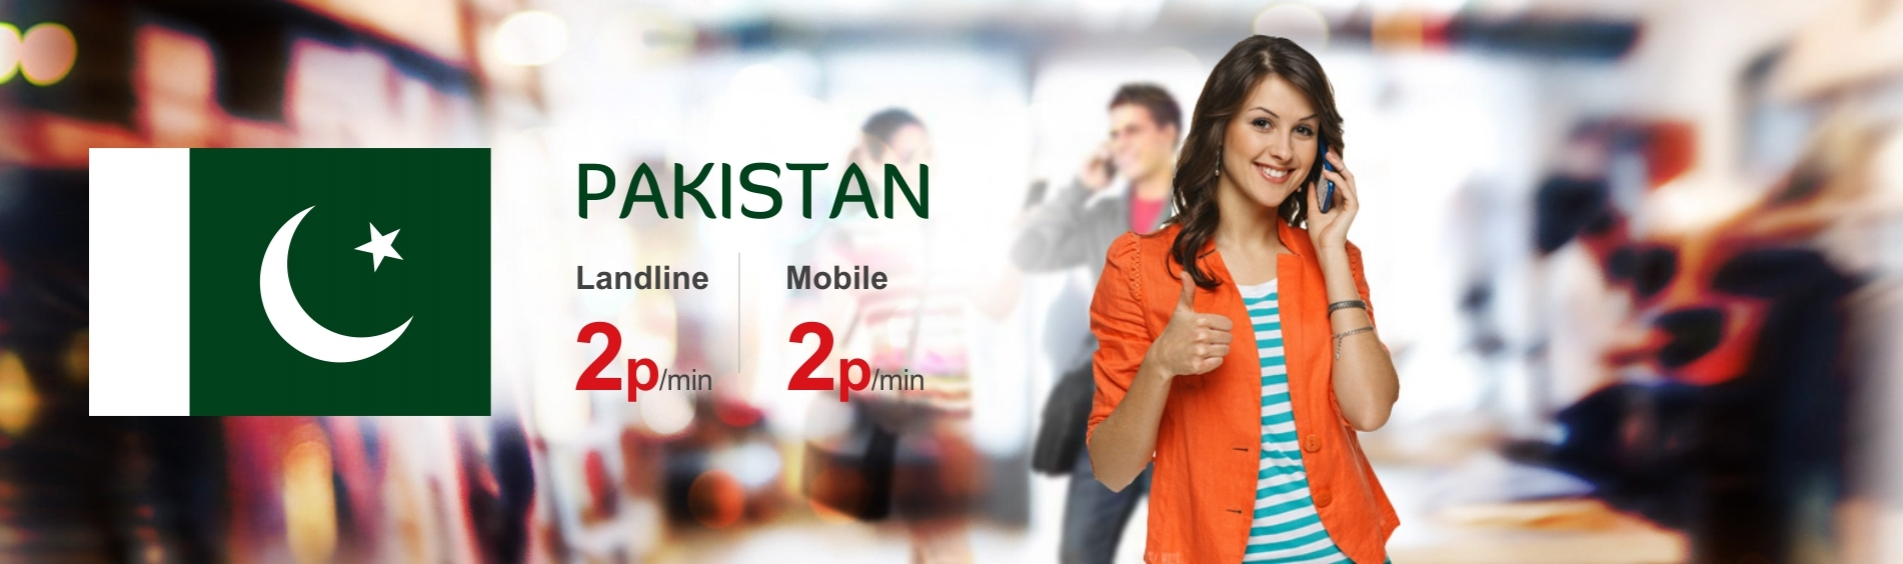 Best Calling Rates for Pakistan